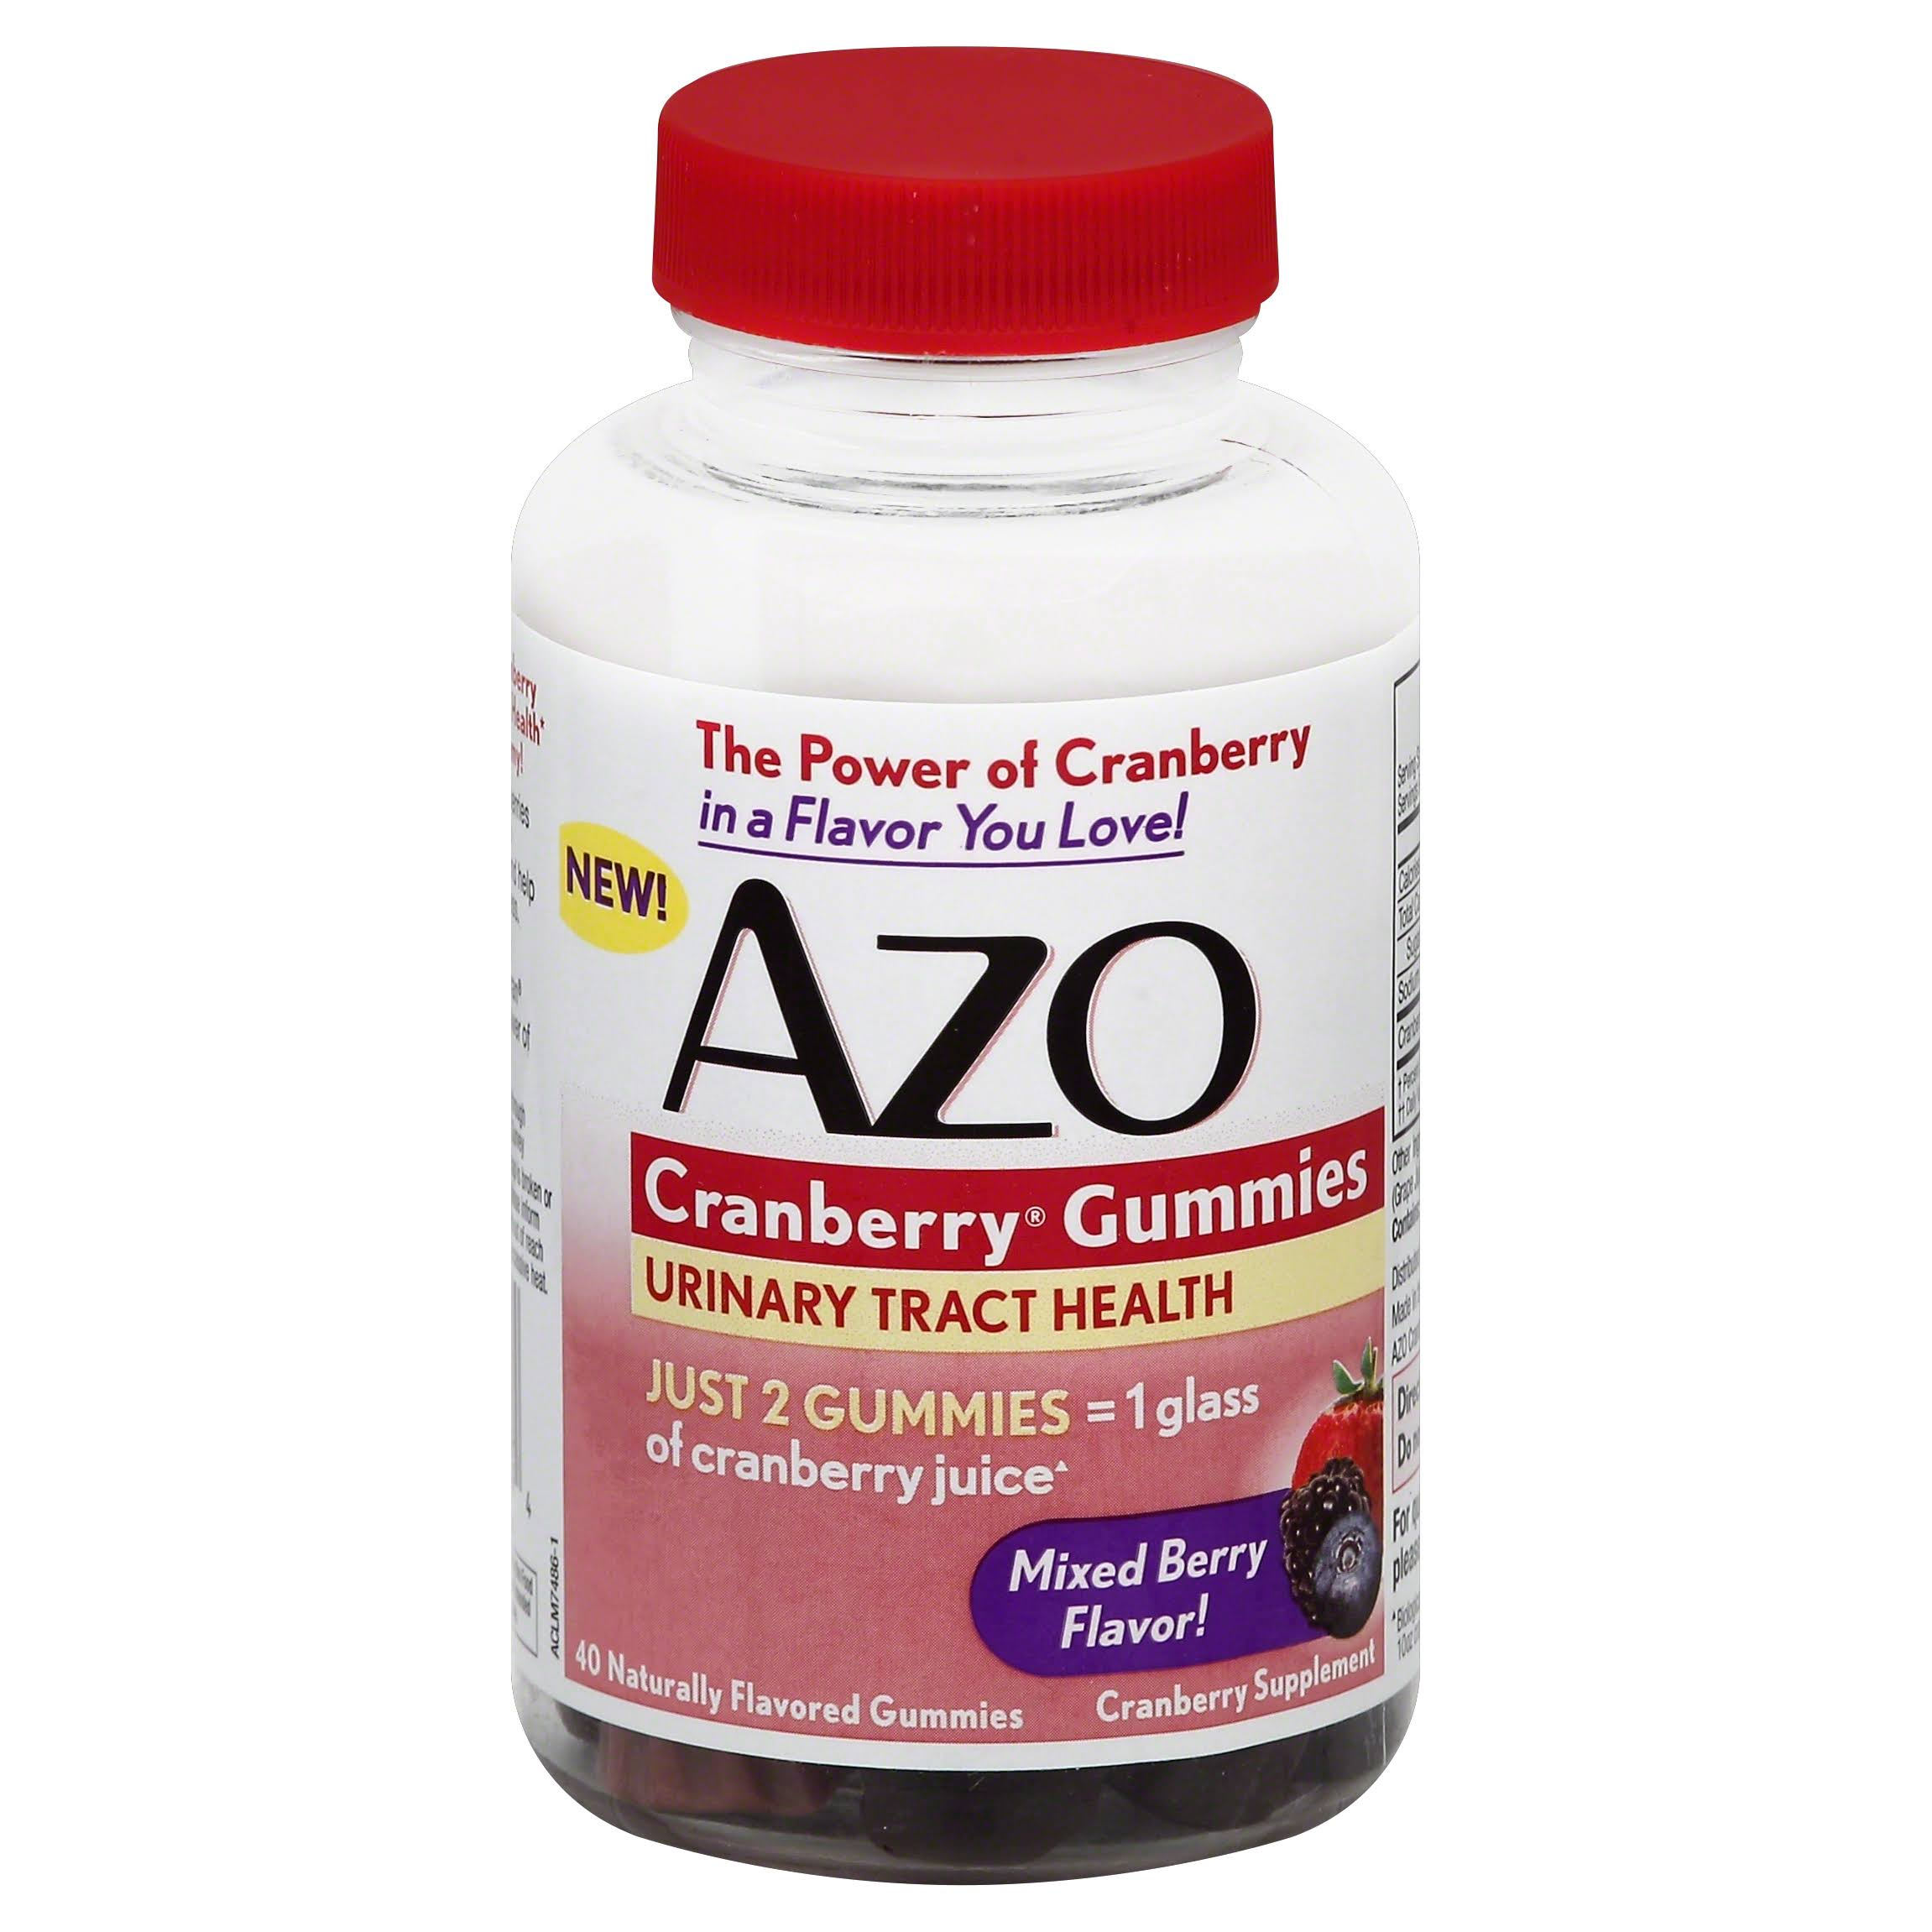 AZO Cranberry Gummies Dietary Supplement - 40ct